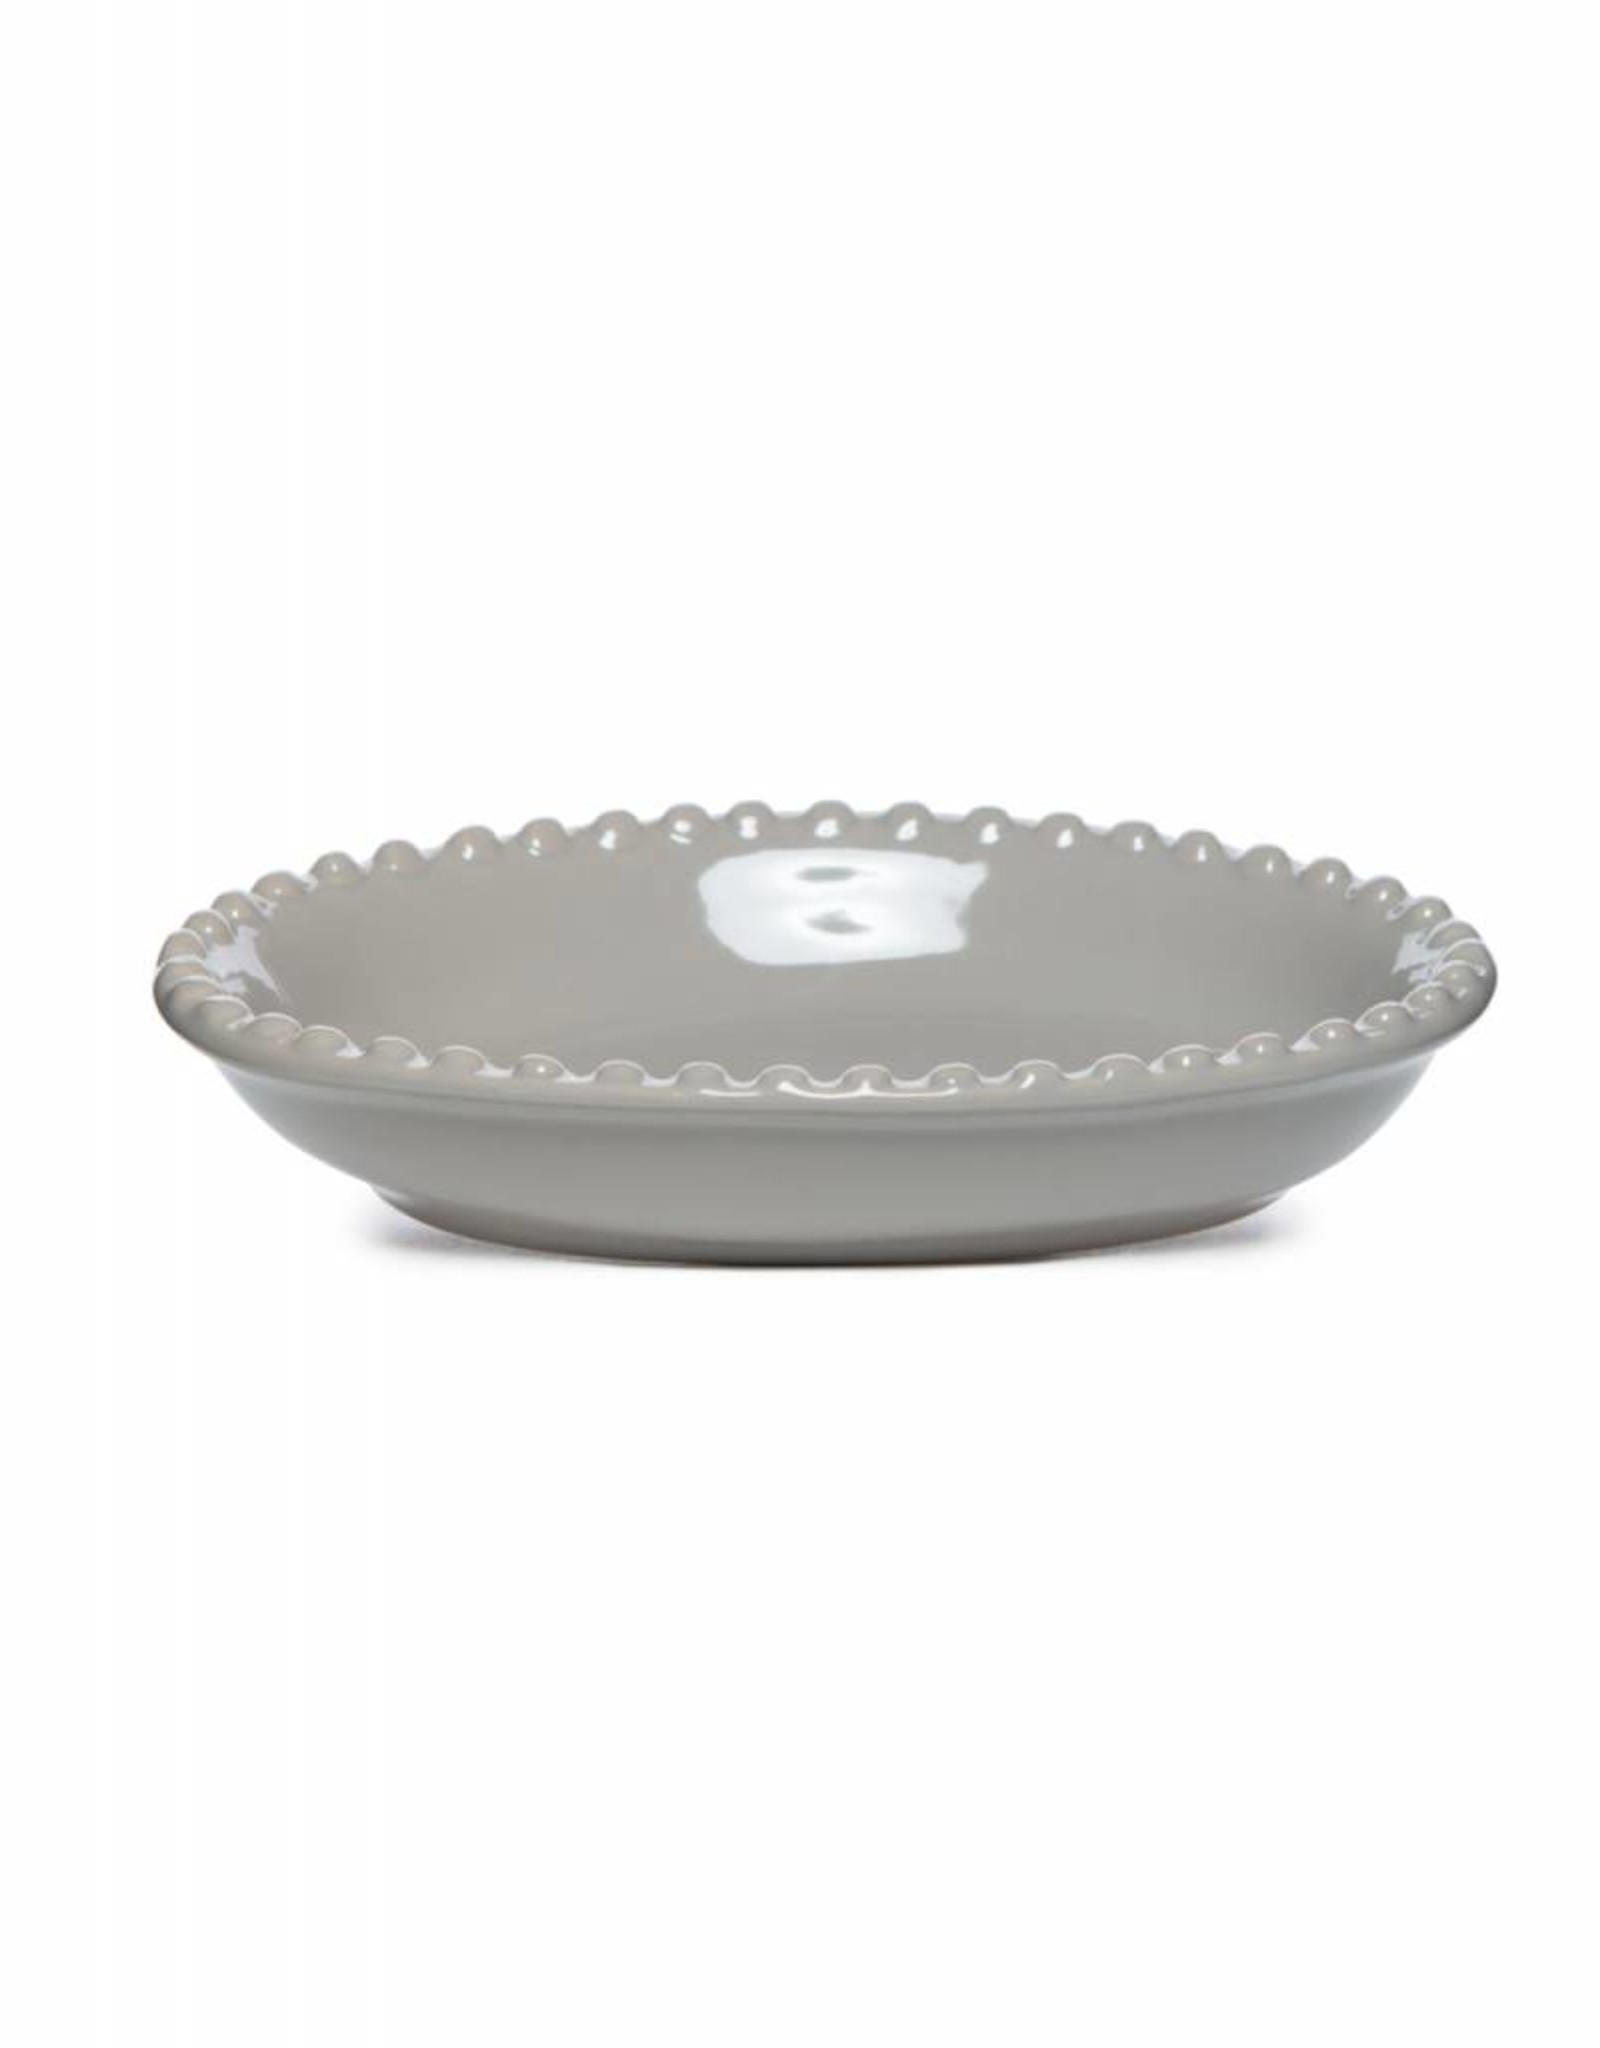 Barr-Co Pewter Soap Dish